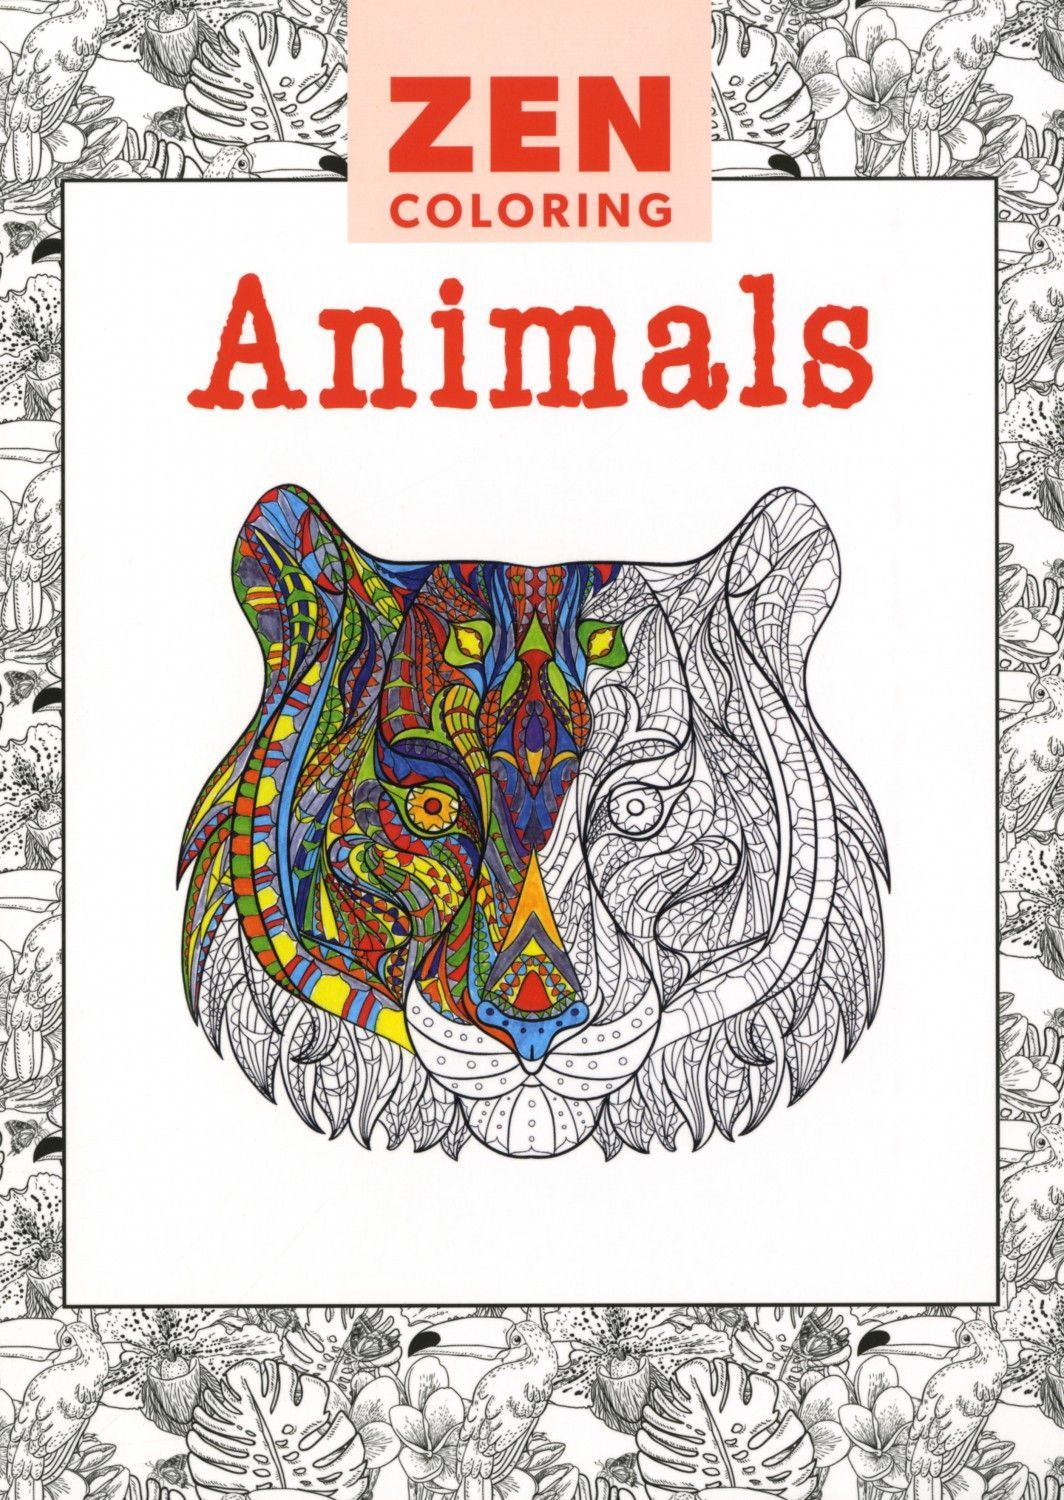 Zen coloring books for adults app - Zen Coloring Animals Adult Coloring Book